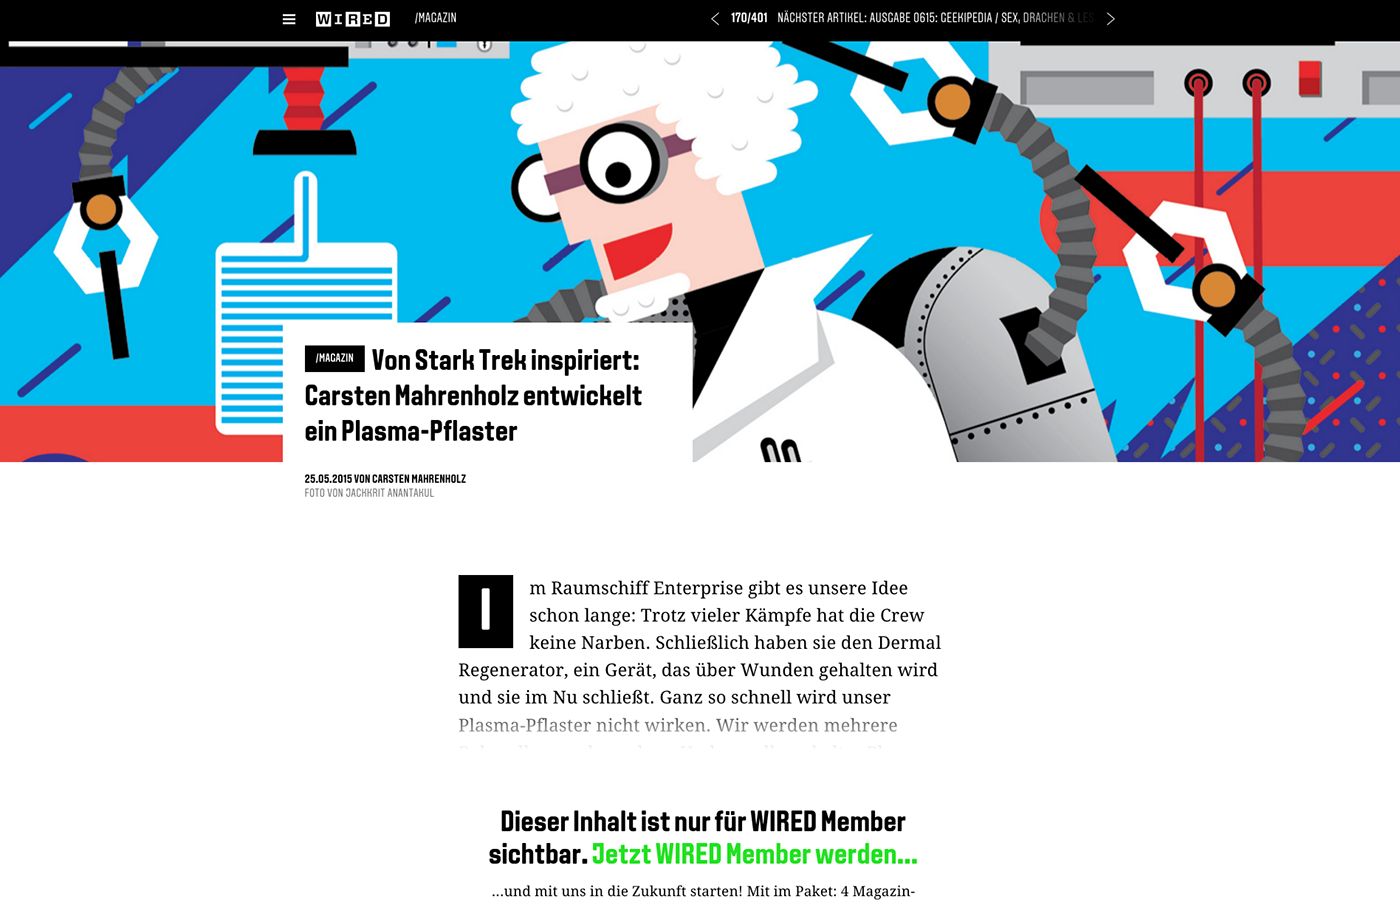 Illustration for WIRED magazine germany on Behance